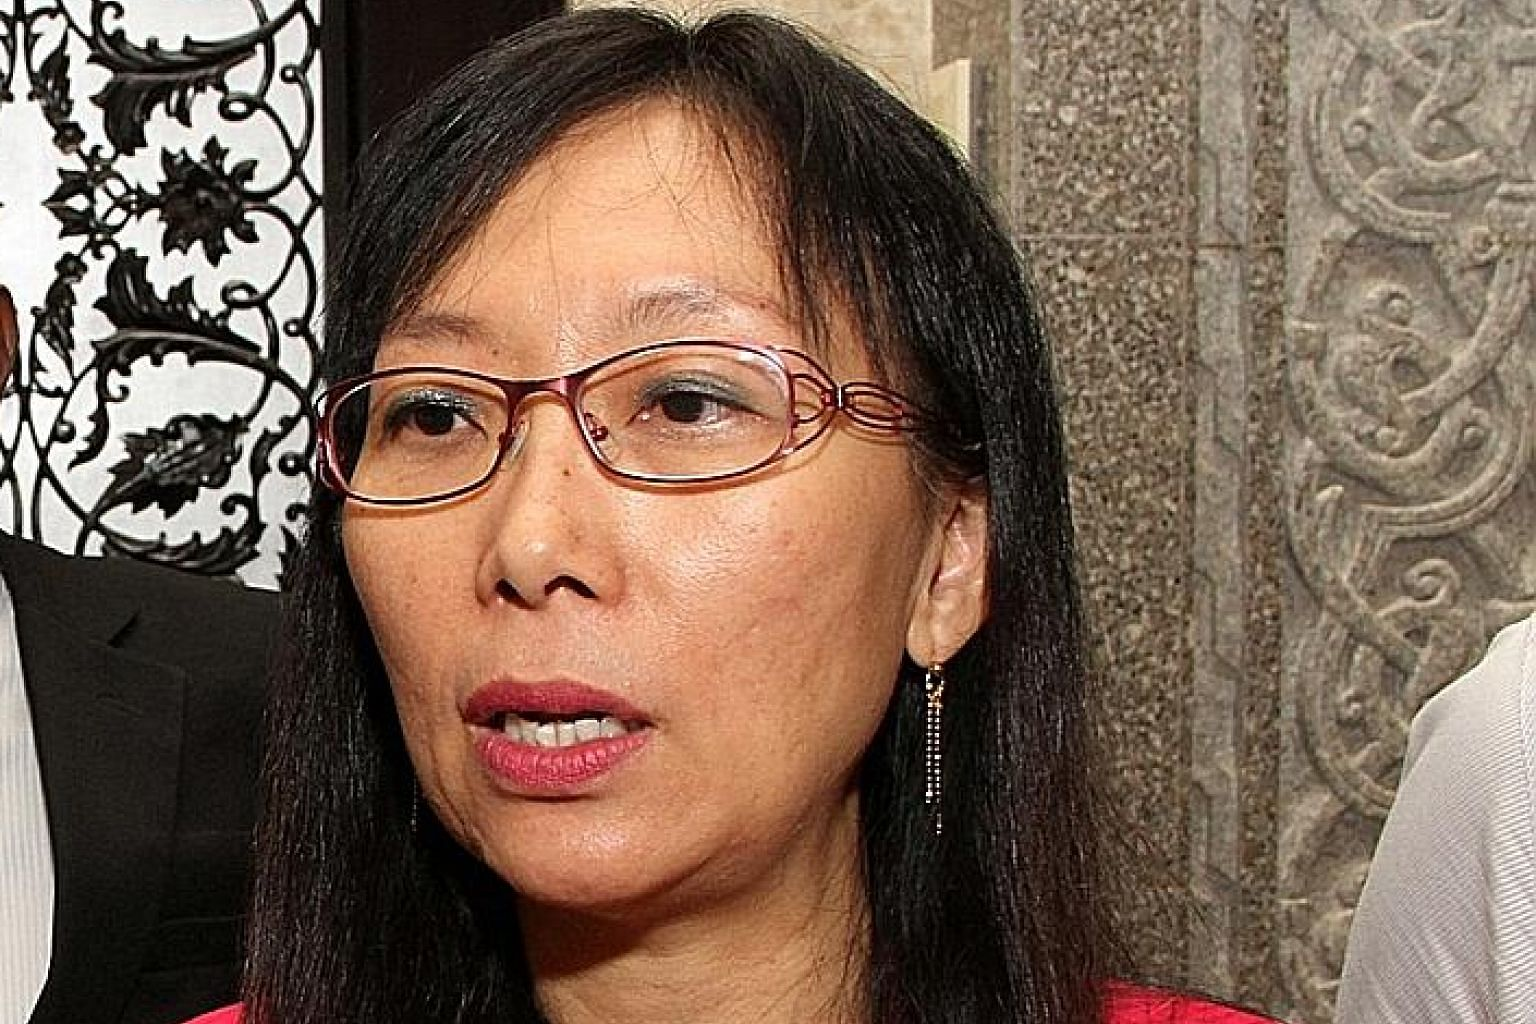 Ms Kok has been awarded $117,000 in damages in her lawsuit against the Malaysian government over her wrongful arrest and detention under the Internal Security Act.